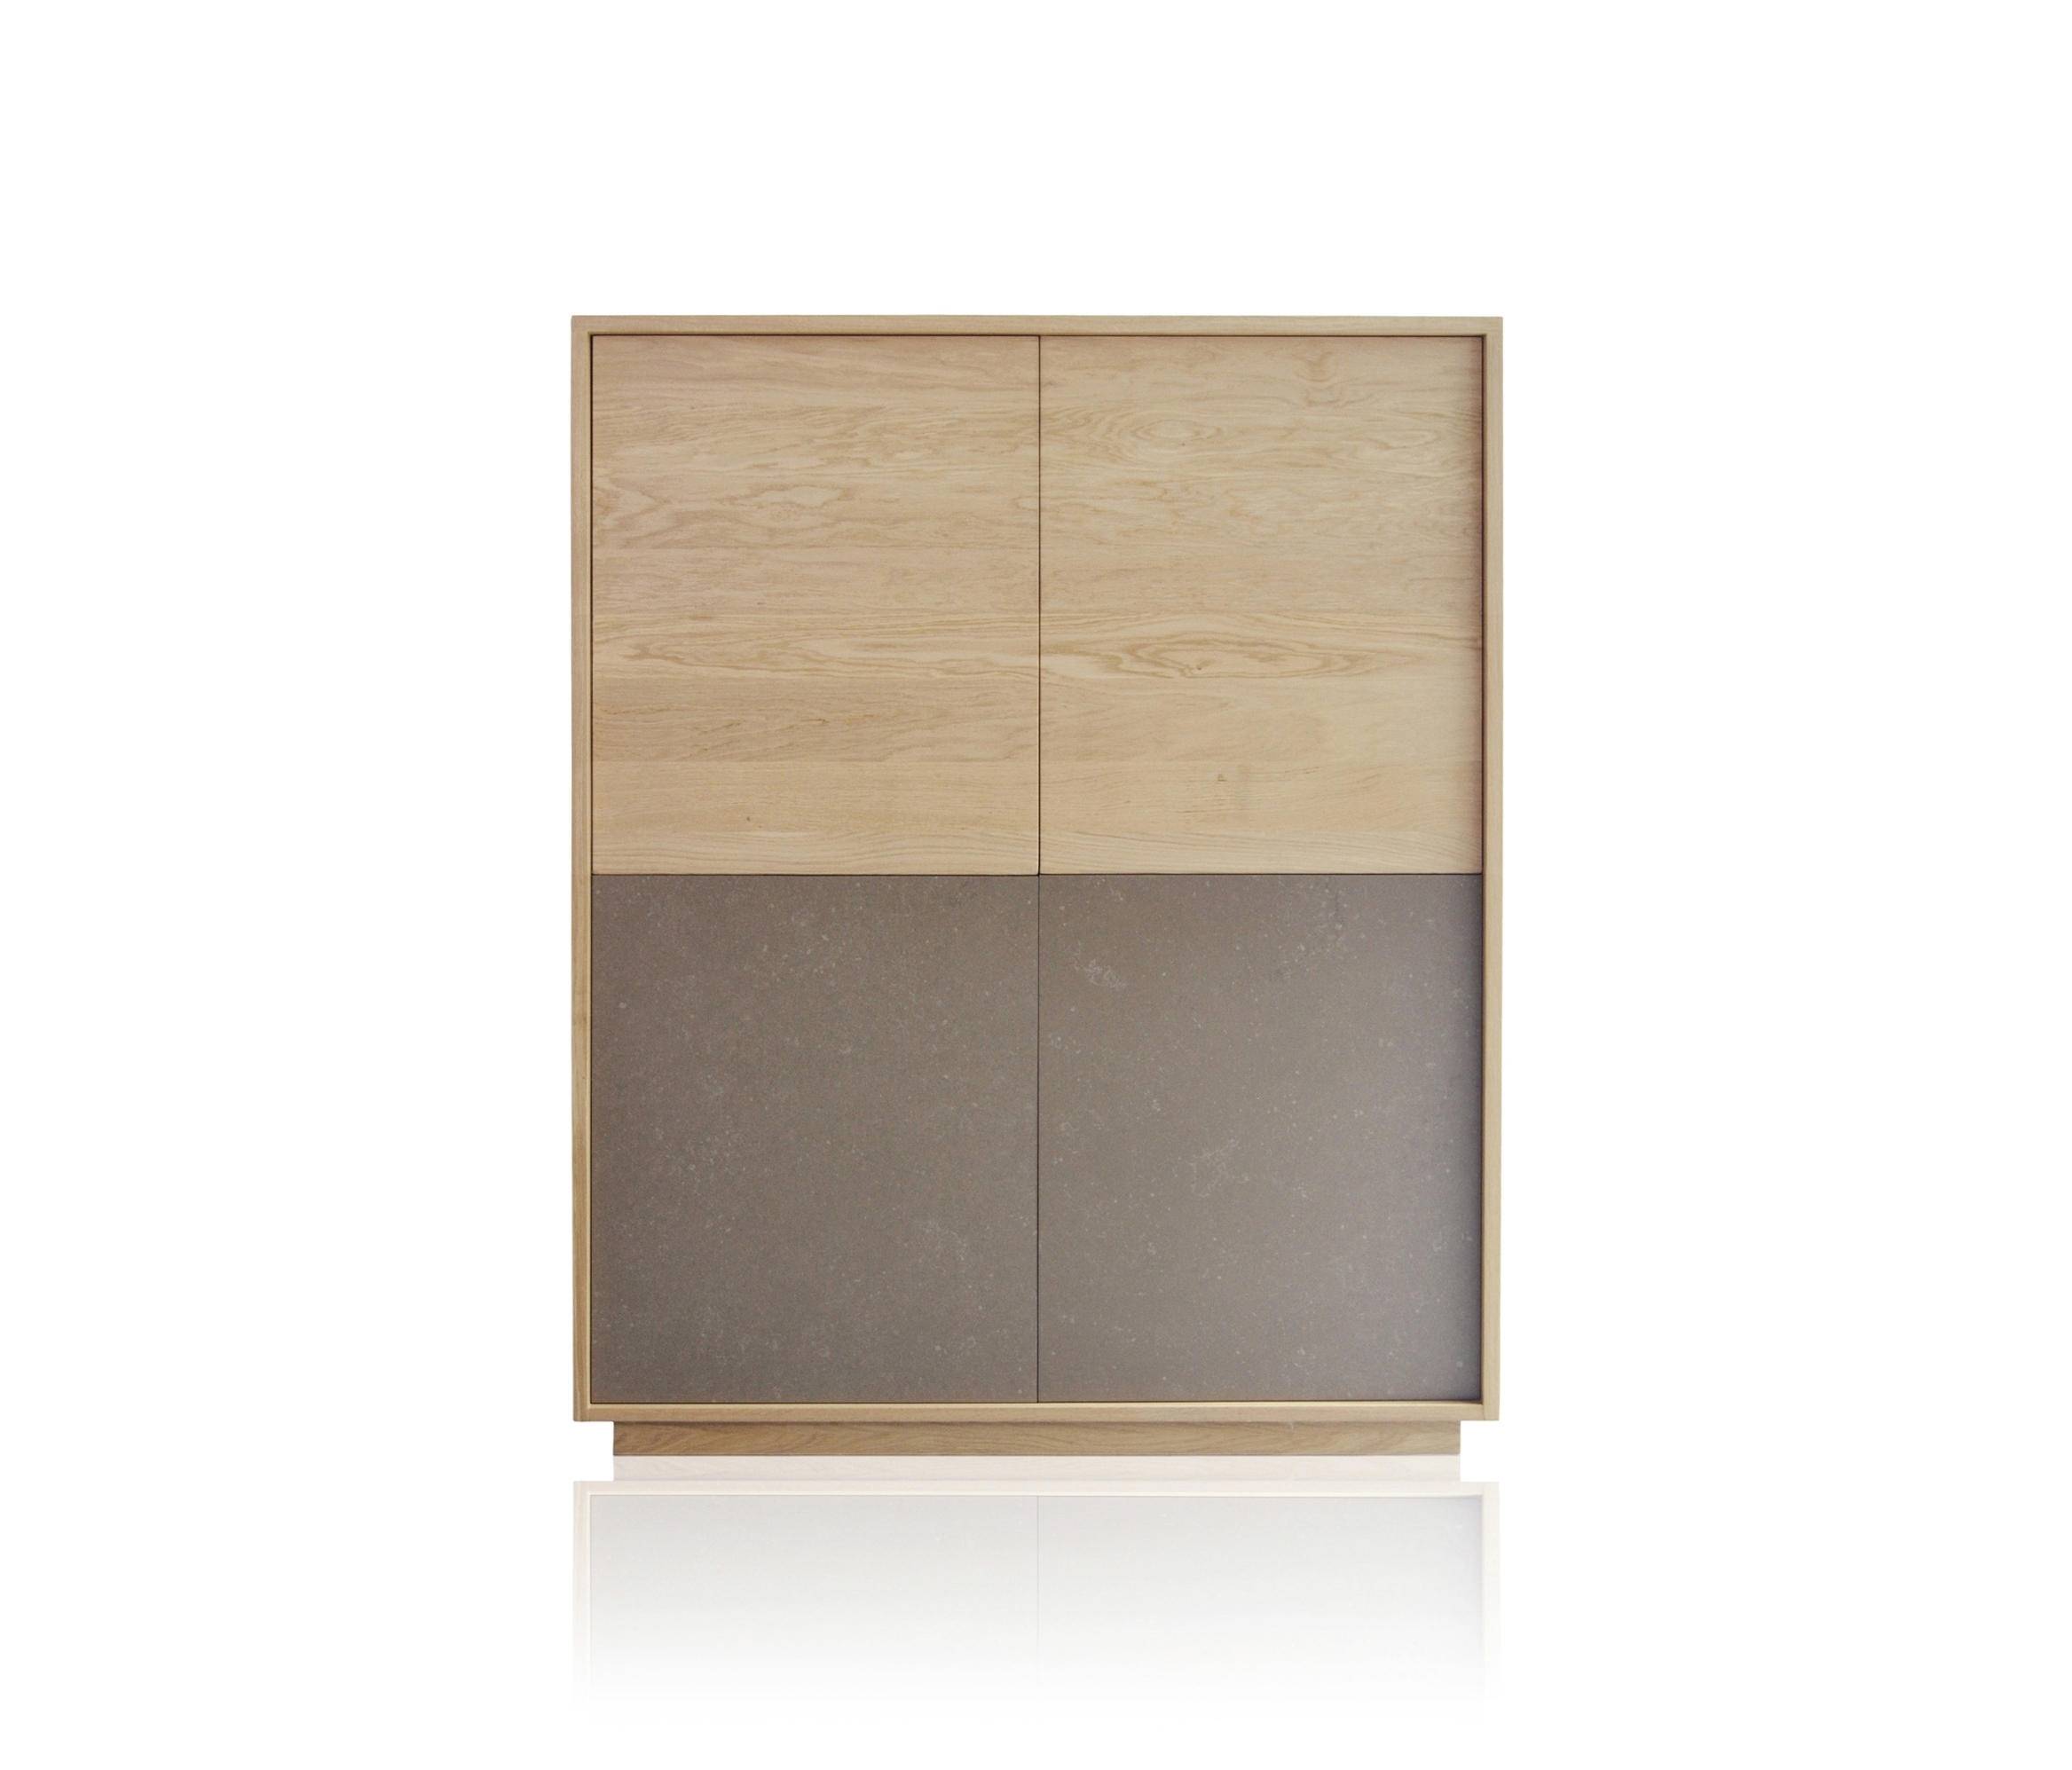 Basic 4 Door Module – Sideboards From Expormim   Architonic With Regard To 2017 Square Brass 4 Door Sideboards (#3 of 20)